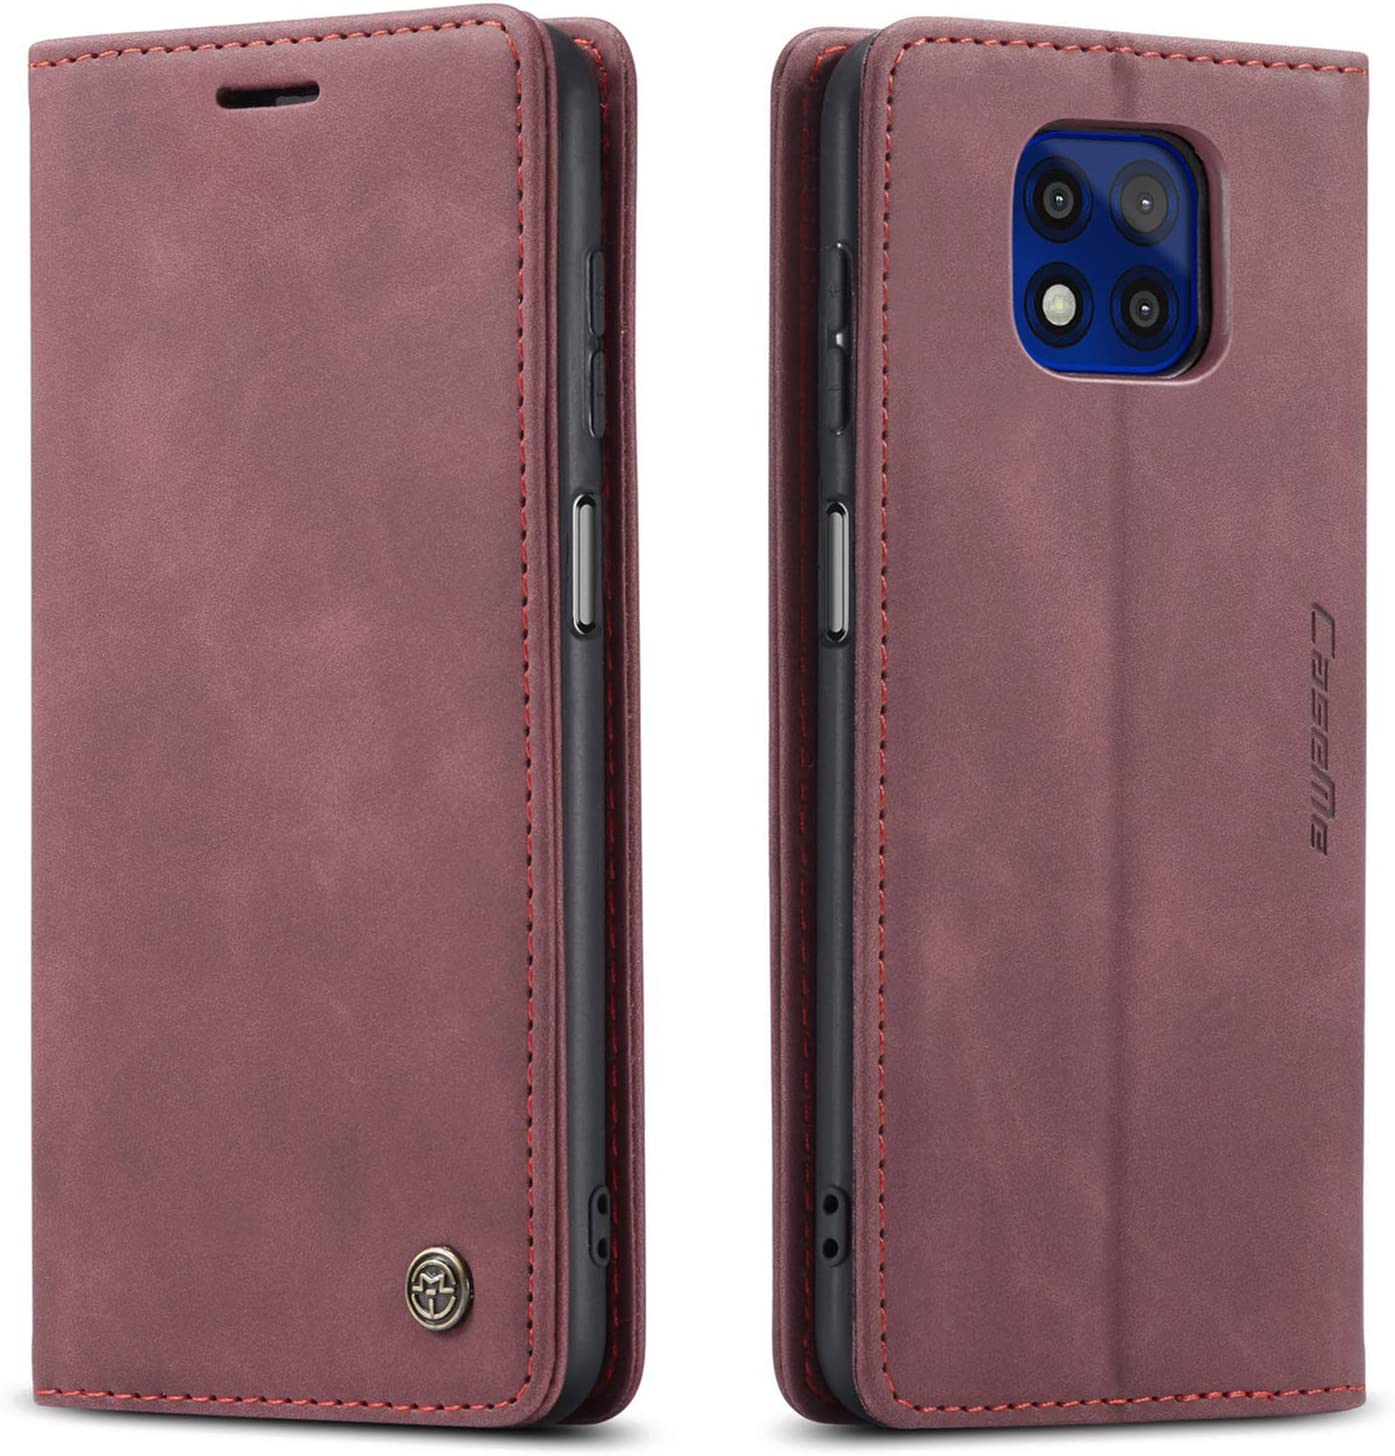 Kowauri Flip Case for Moto G Power 2021,Leather Wallet Case Classic Design with Card Slot and Magnetic Closure Flip Fold Case for Motorola Moto G Power 2021 (Wine red)